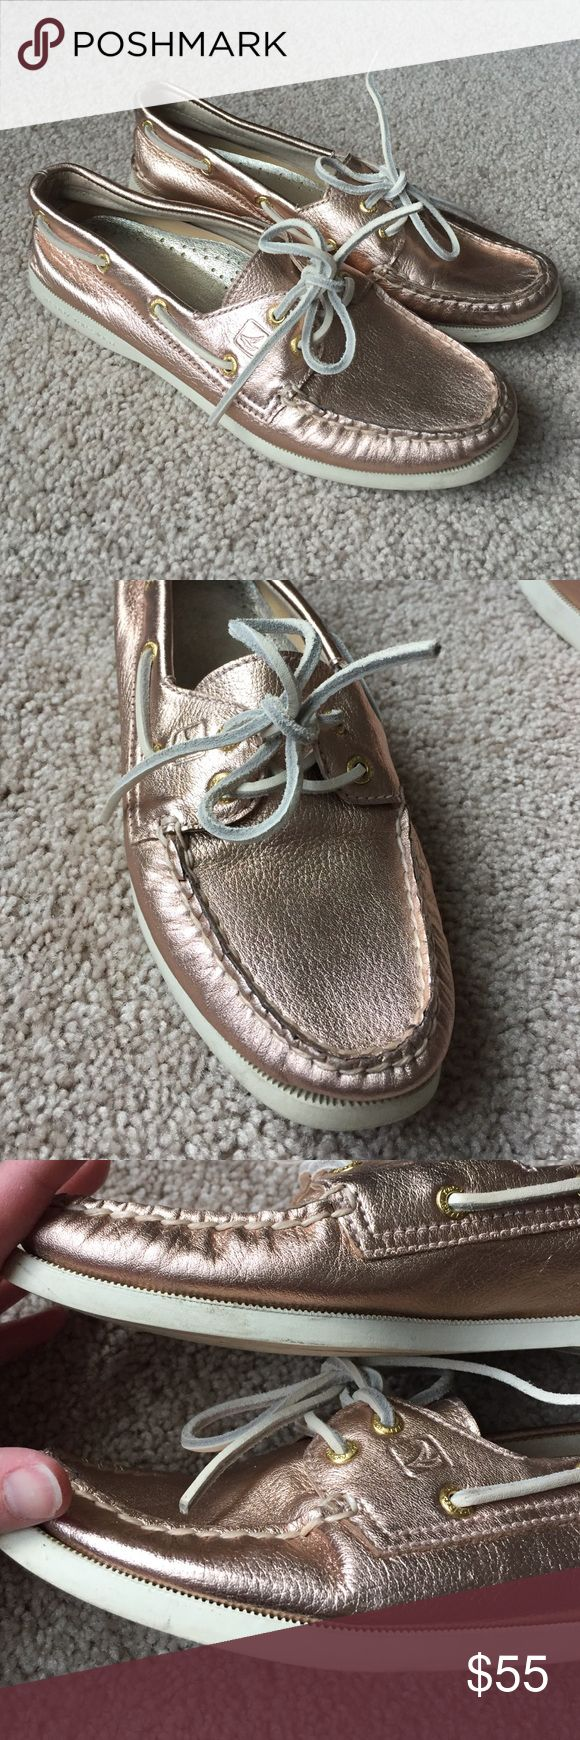 Sperry metallic rose gold shoes sz 7 Excellent condition metallic rose gold, copper colored sperrys ! No signs of wear on leather and only minor scuffs on white bottom part. Sperry Top-Sider Shoes Flats & Loafers